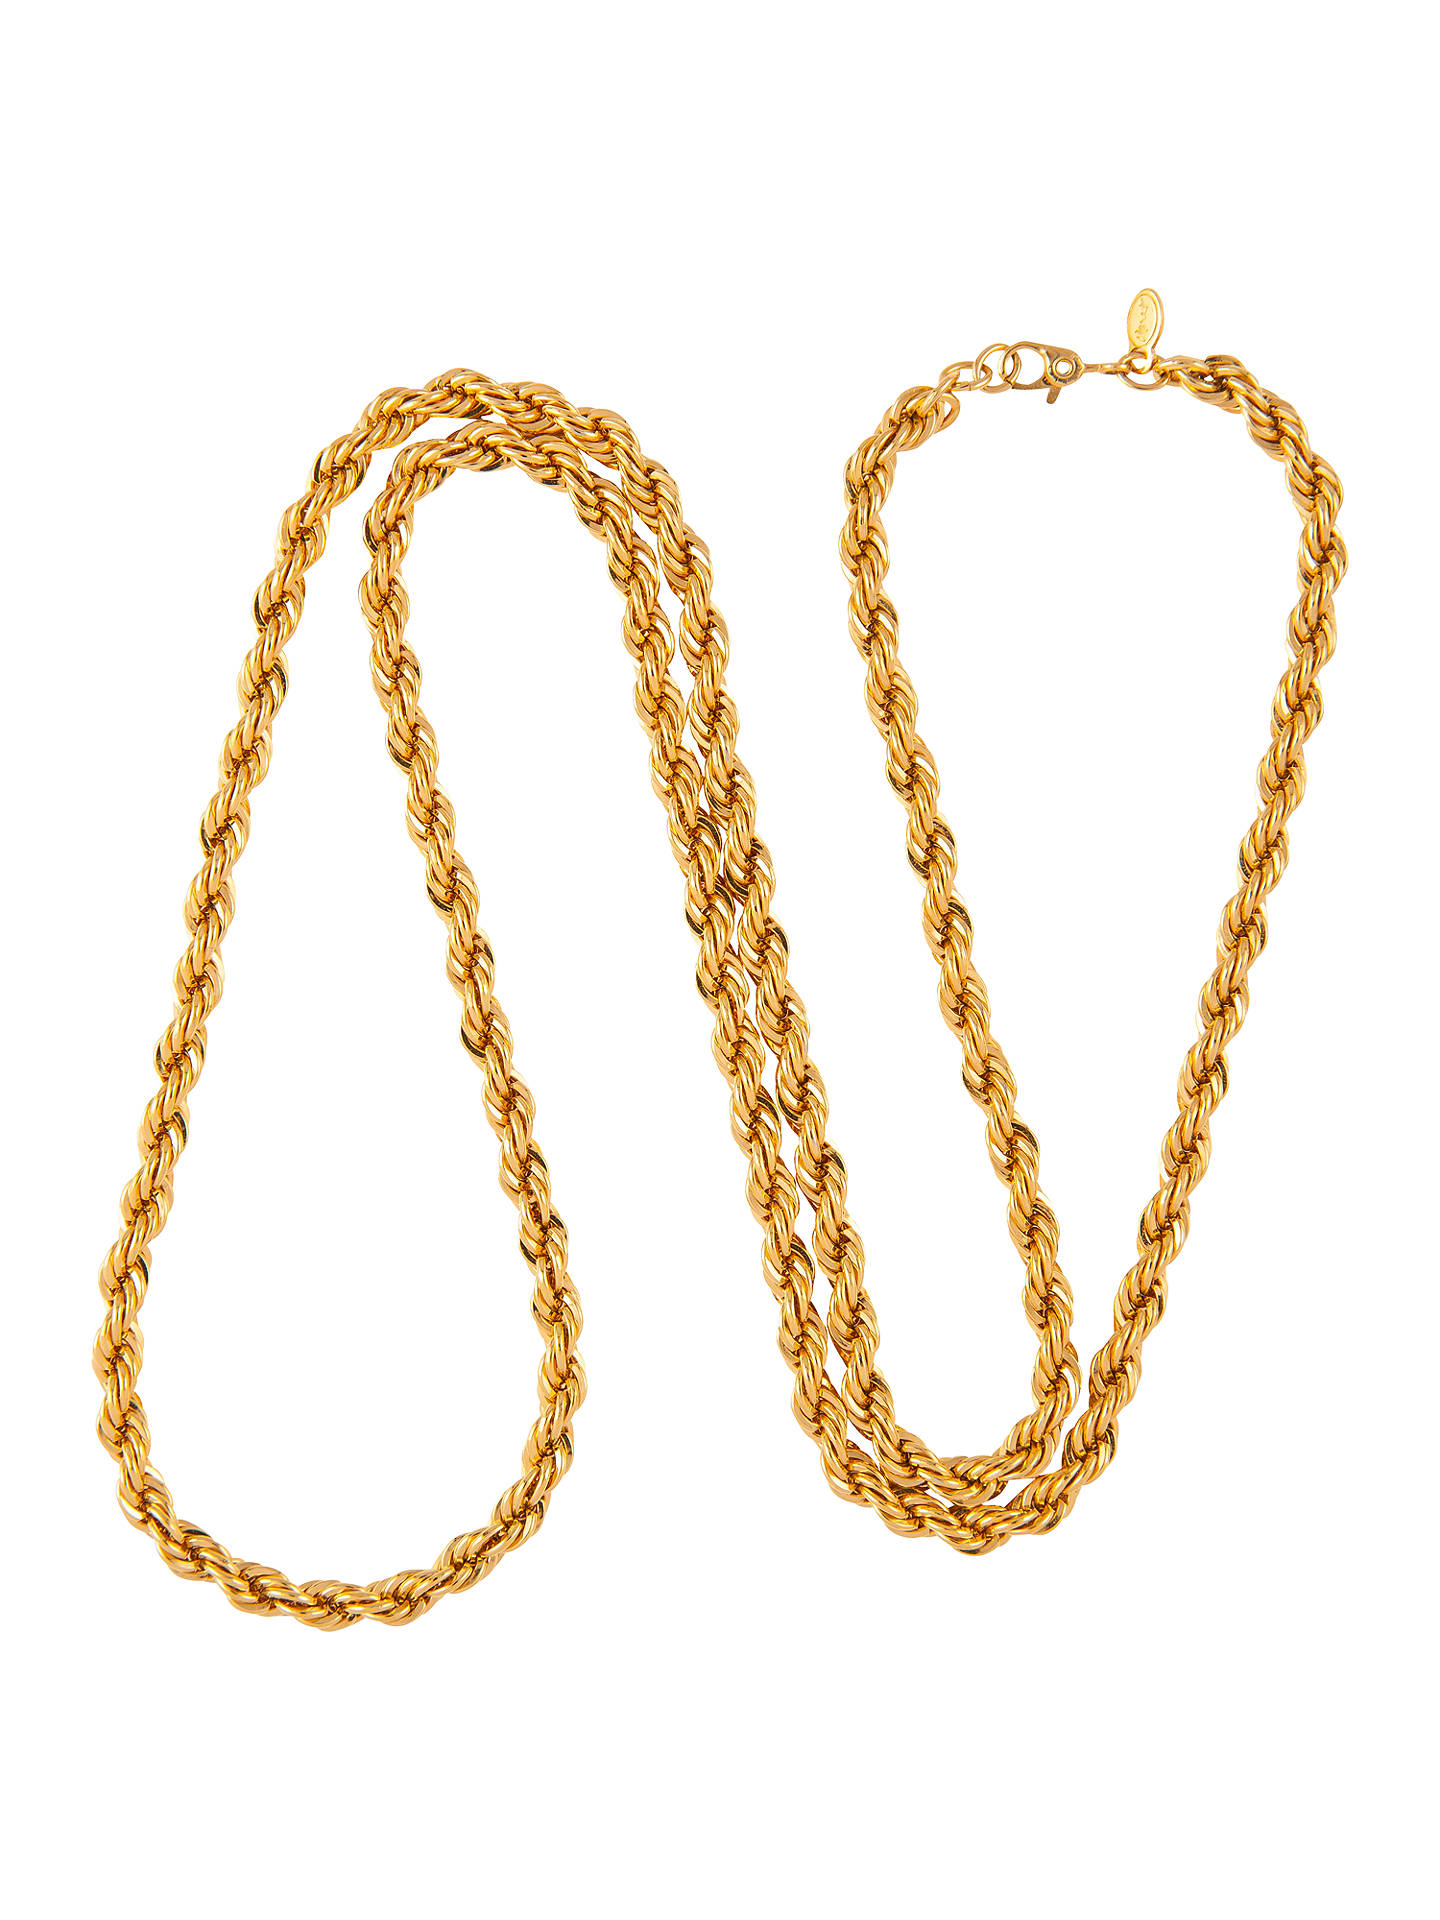 d4d45120415cdb Susan Caplan Vintage 1970s Monet Gold Plated Rope Chain Necklace ...